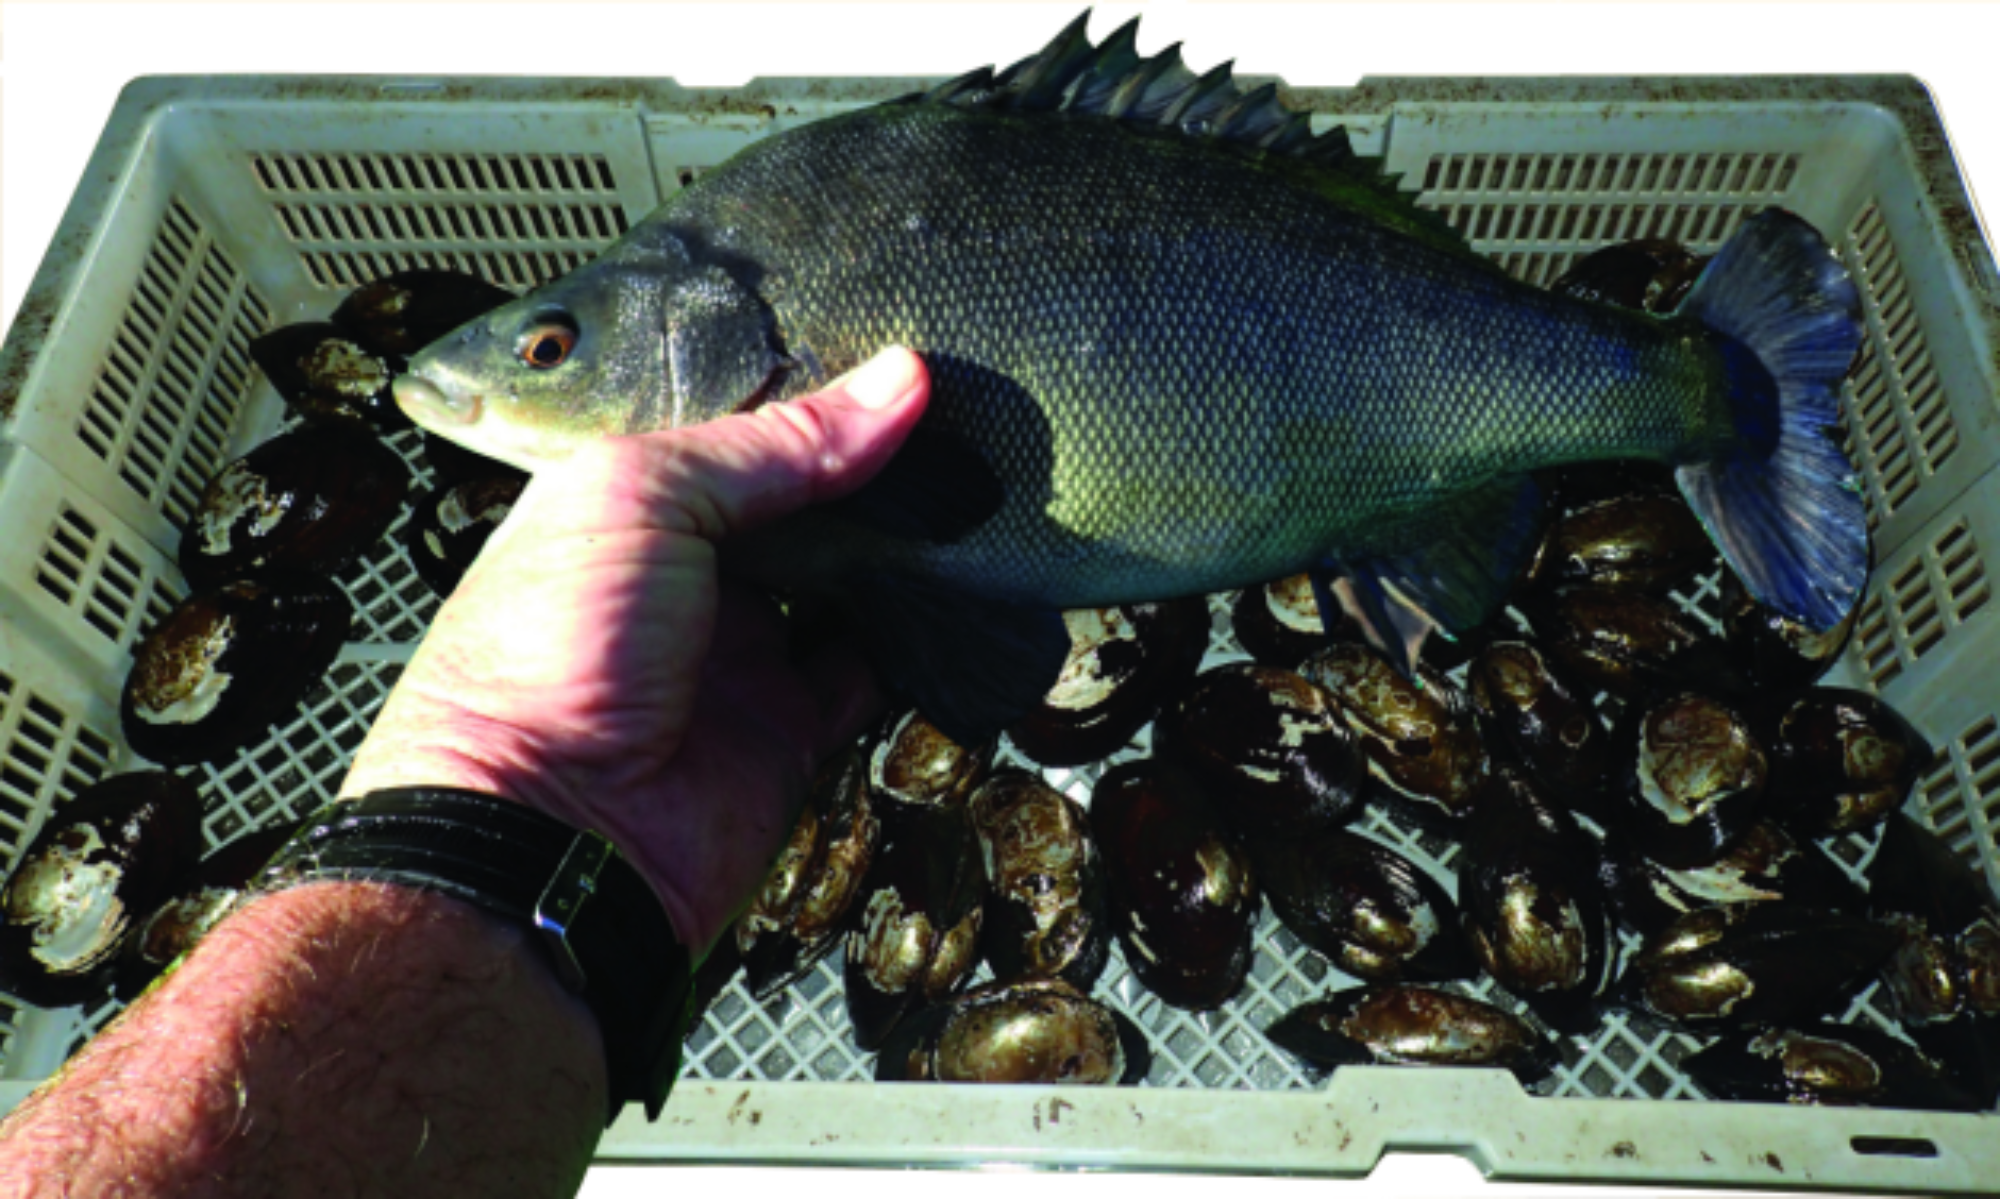 Silver Perch and Mussel Hatchery, plus Yabby Farm